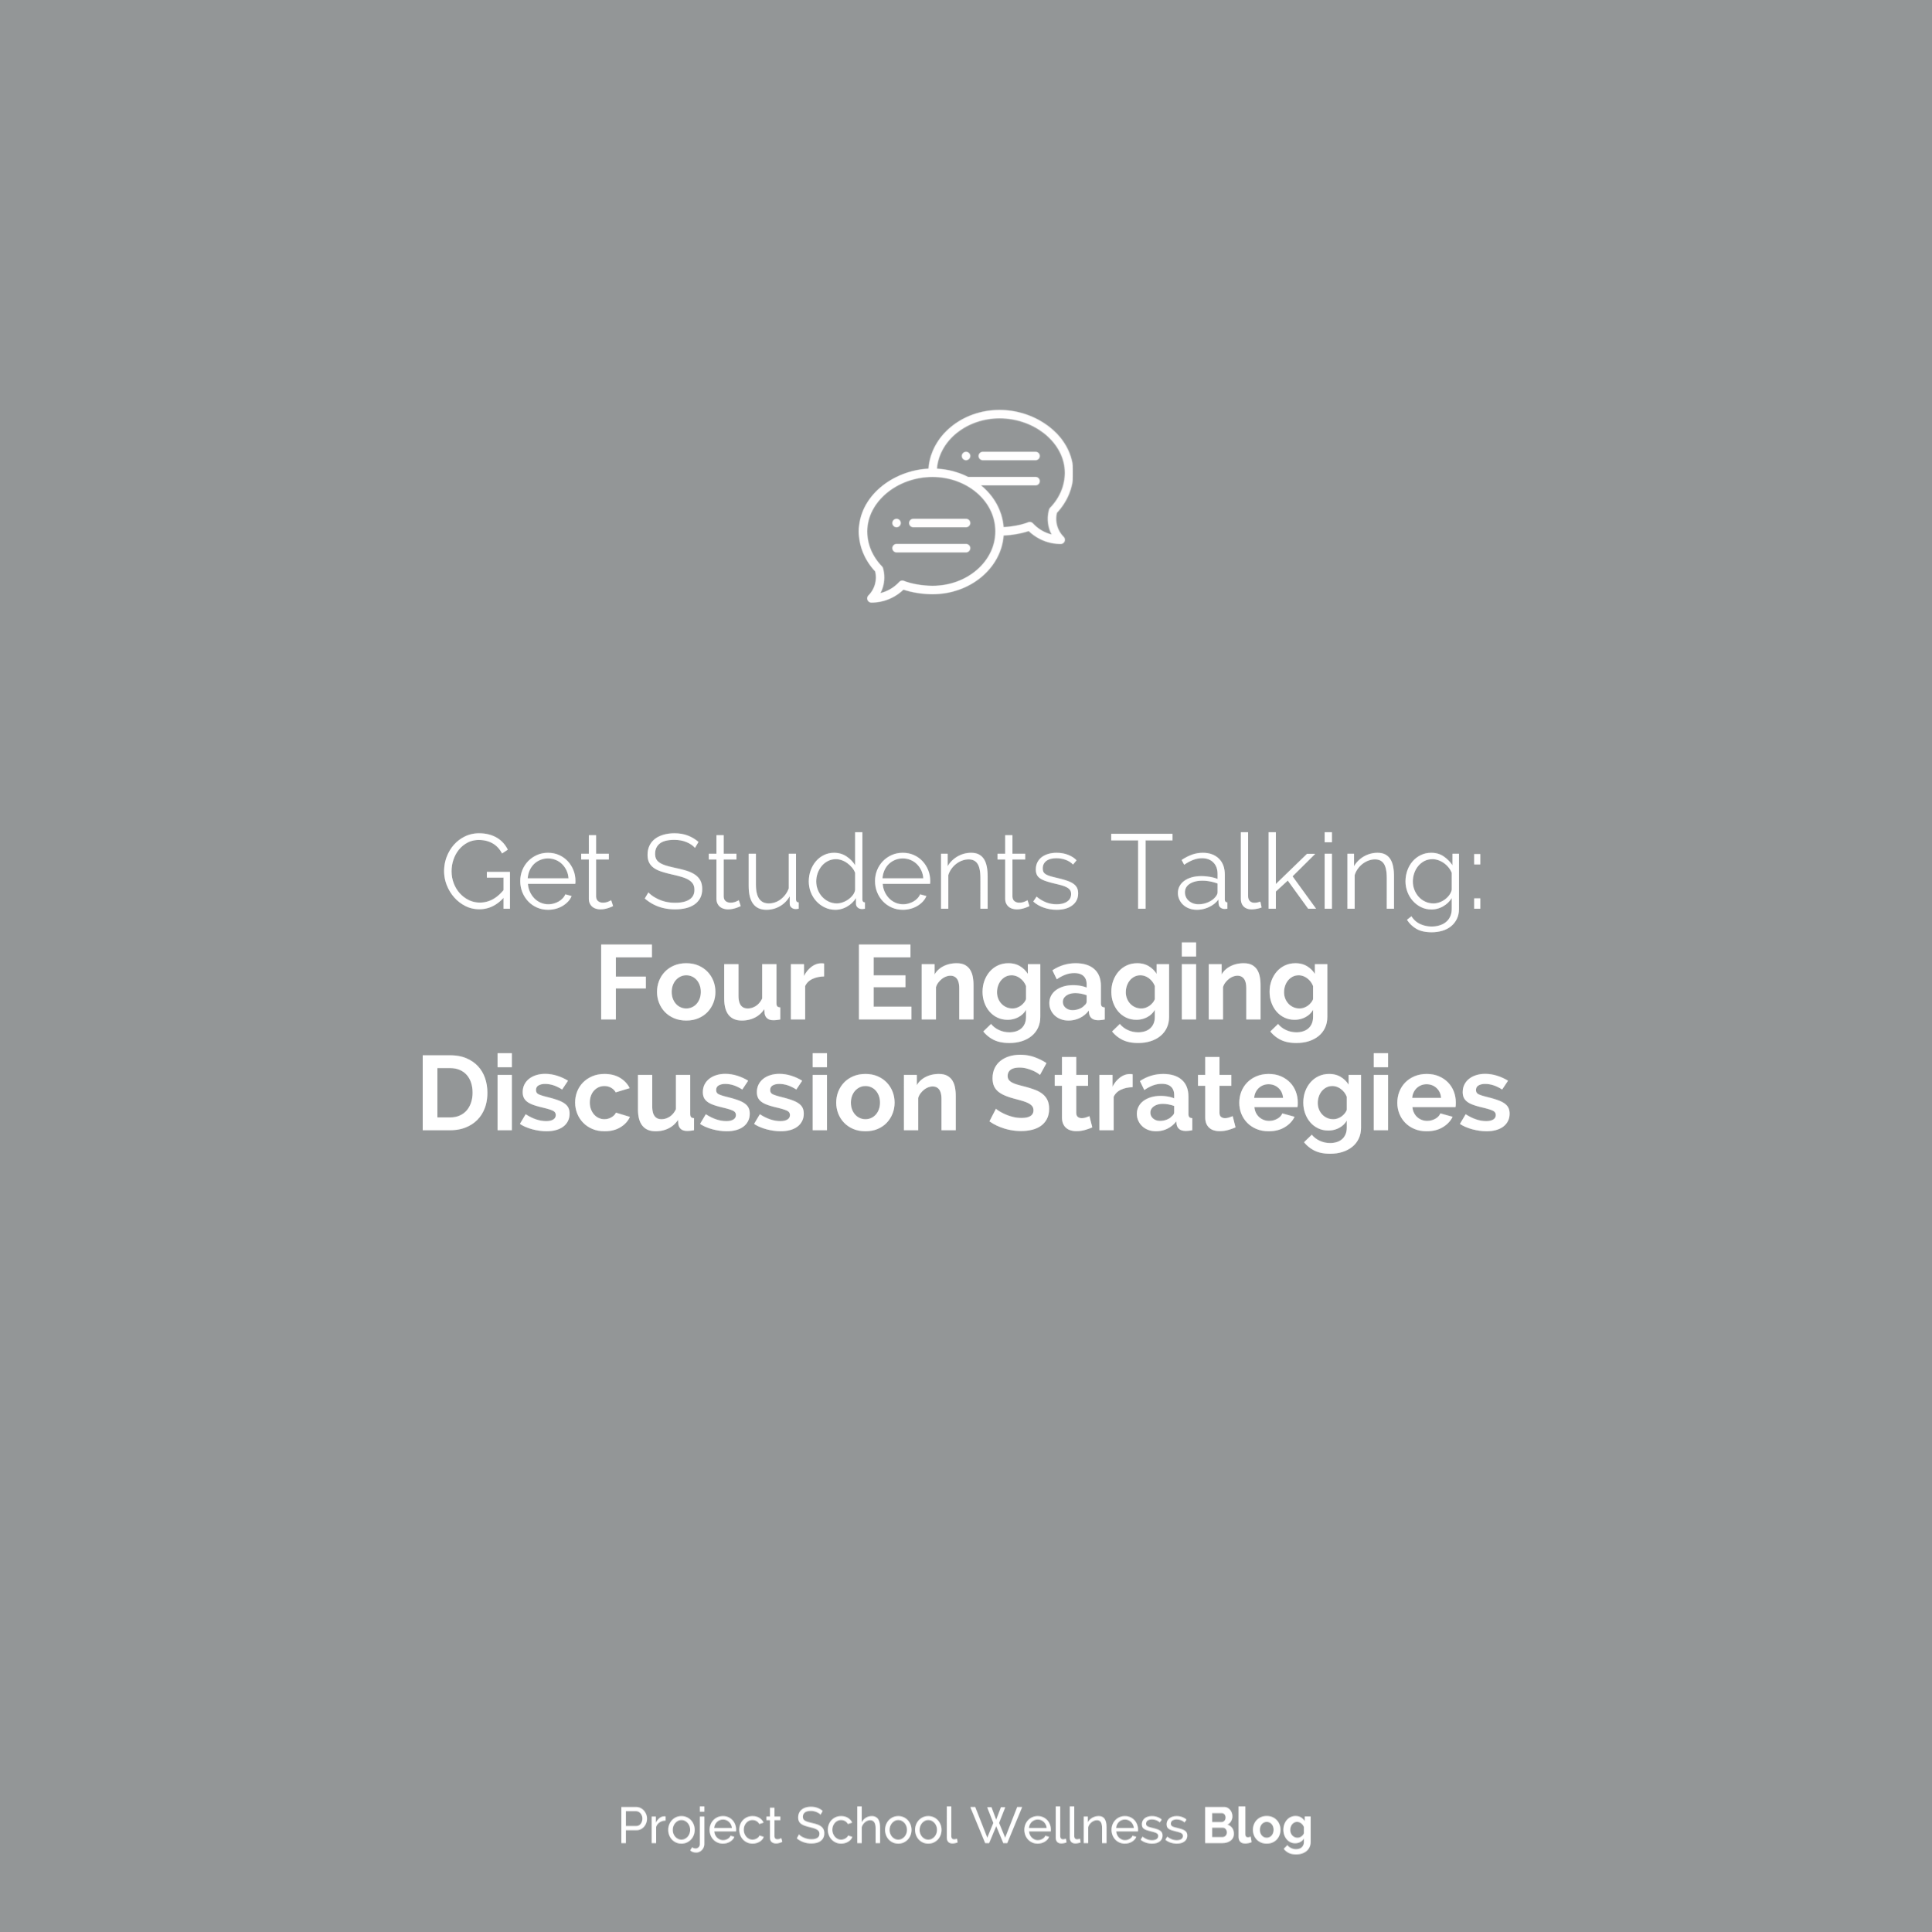 PSW Blog - Get Students Talking Discussion Strategies